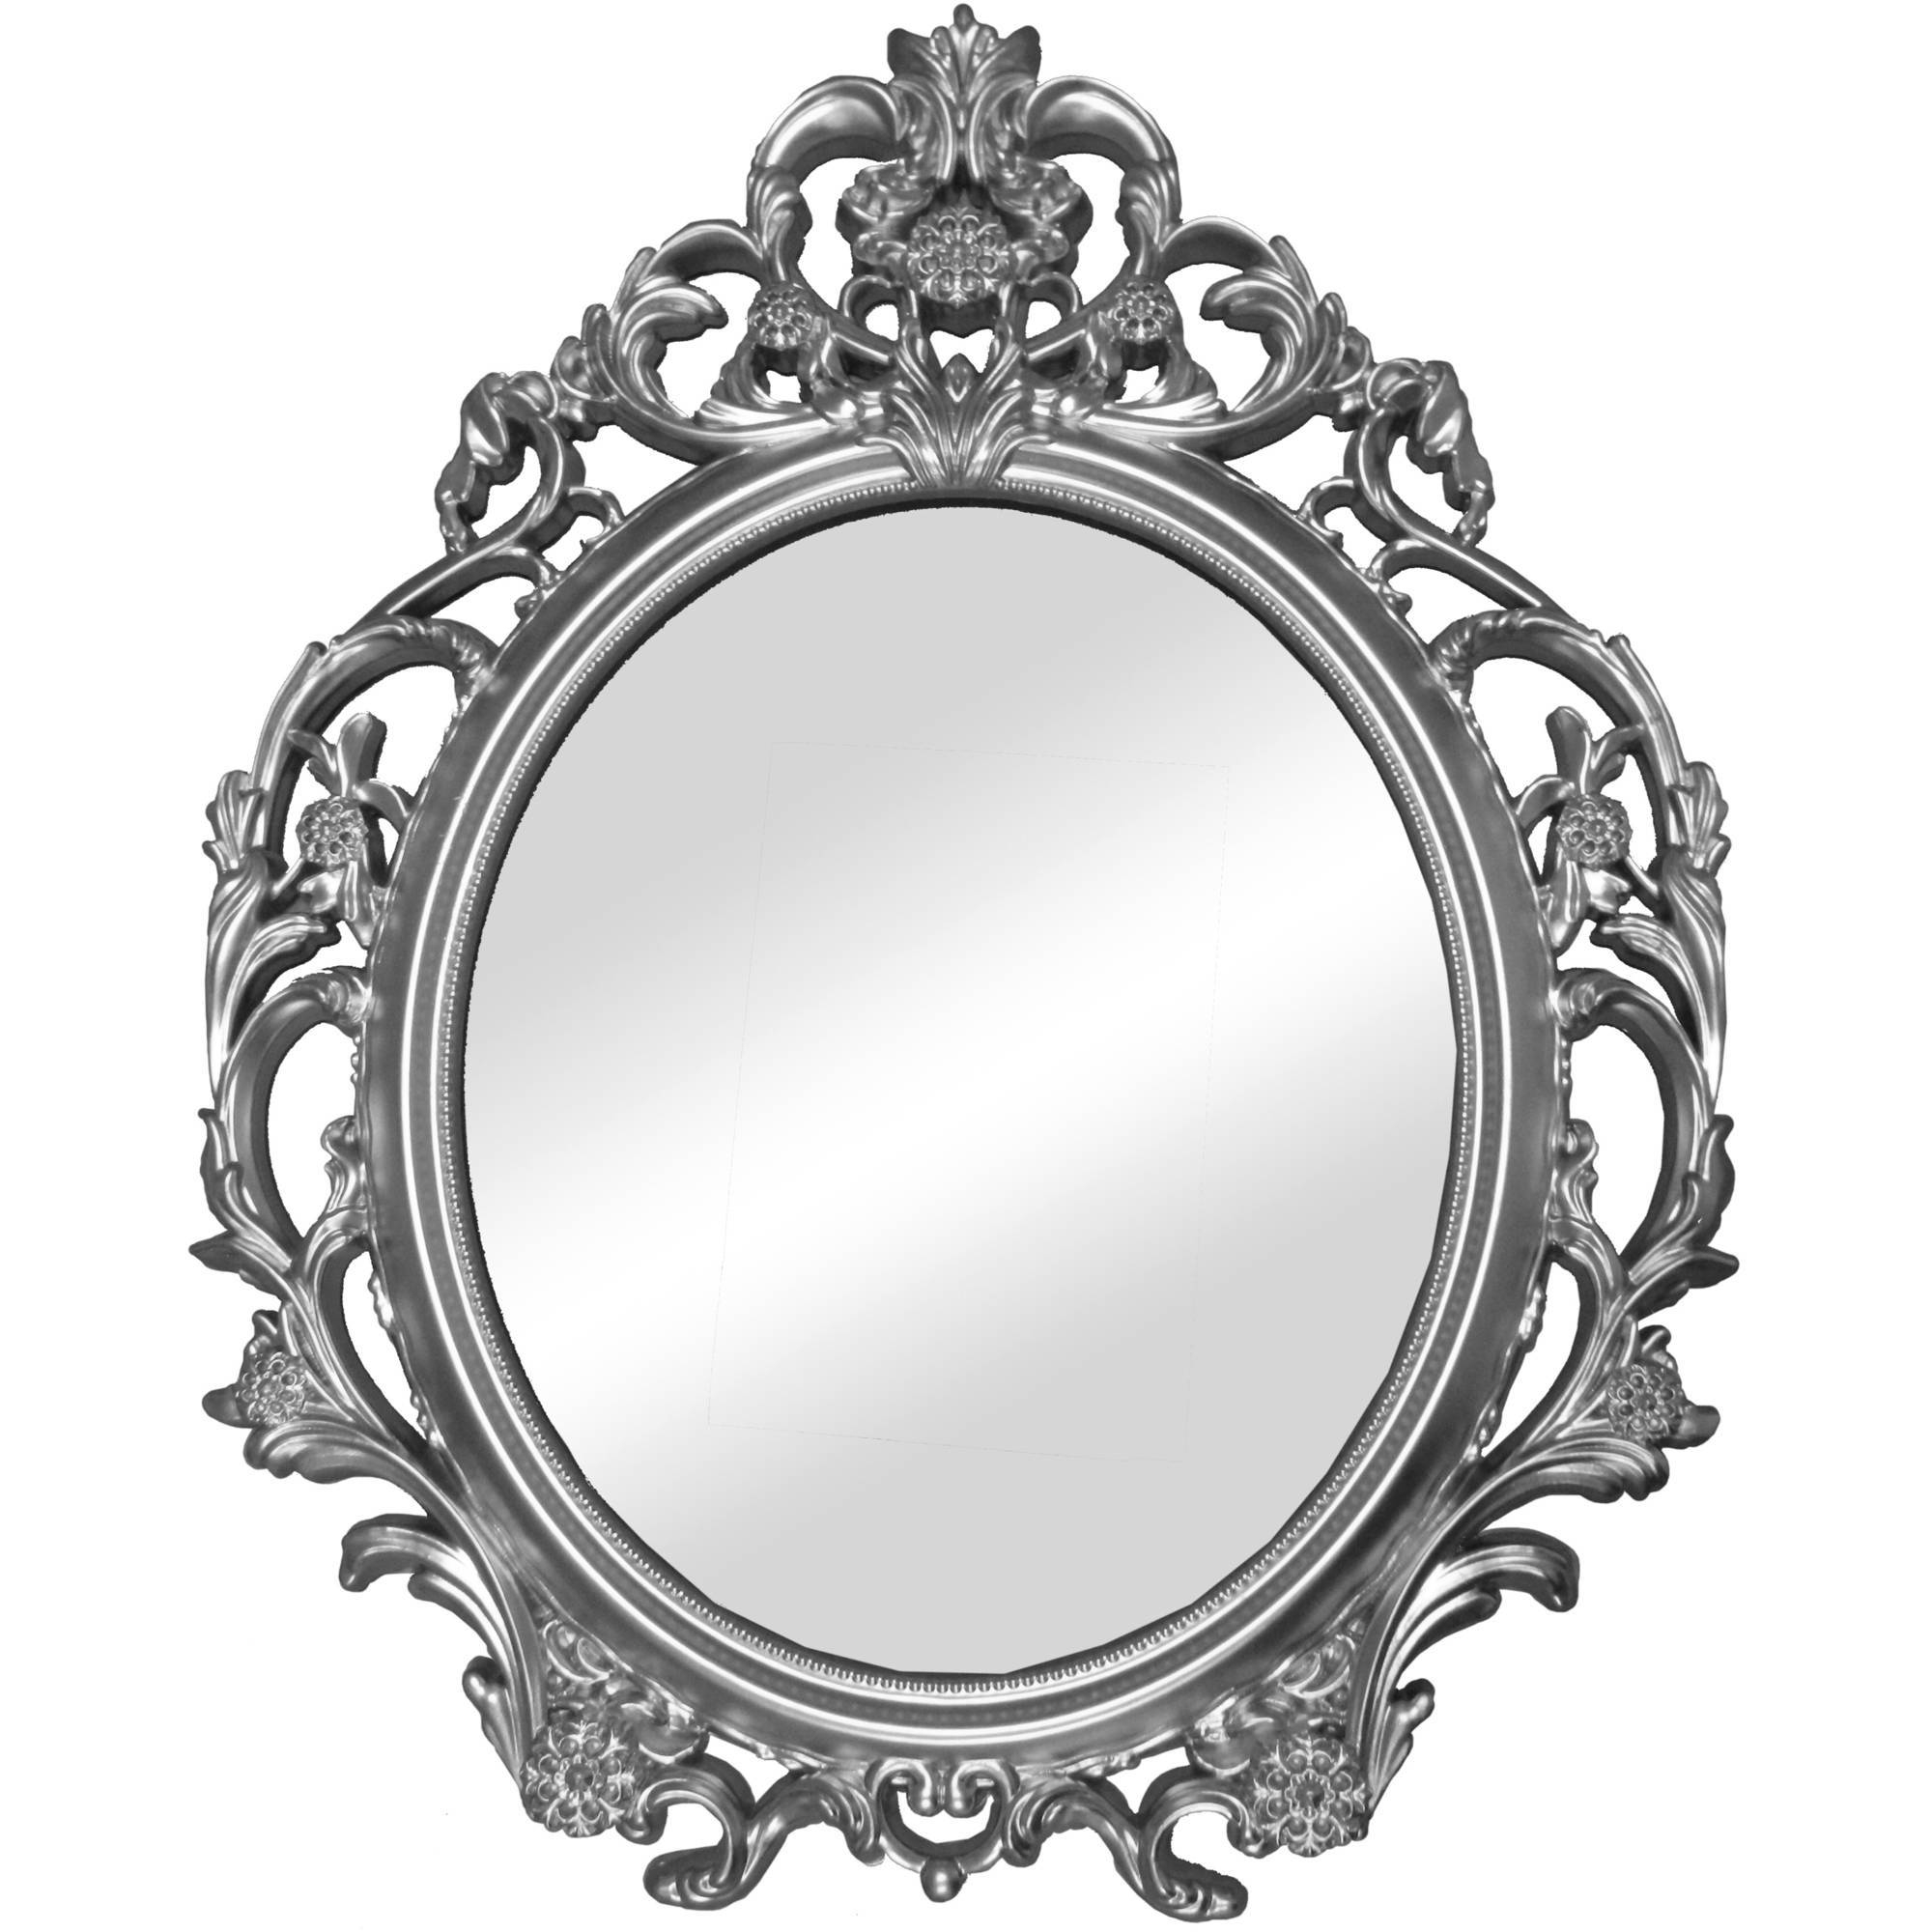 Better Homes And Gardens Baroque Wall Mirror - Walmart within Baroque Wall Mirrors (Image 6 of 15)